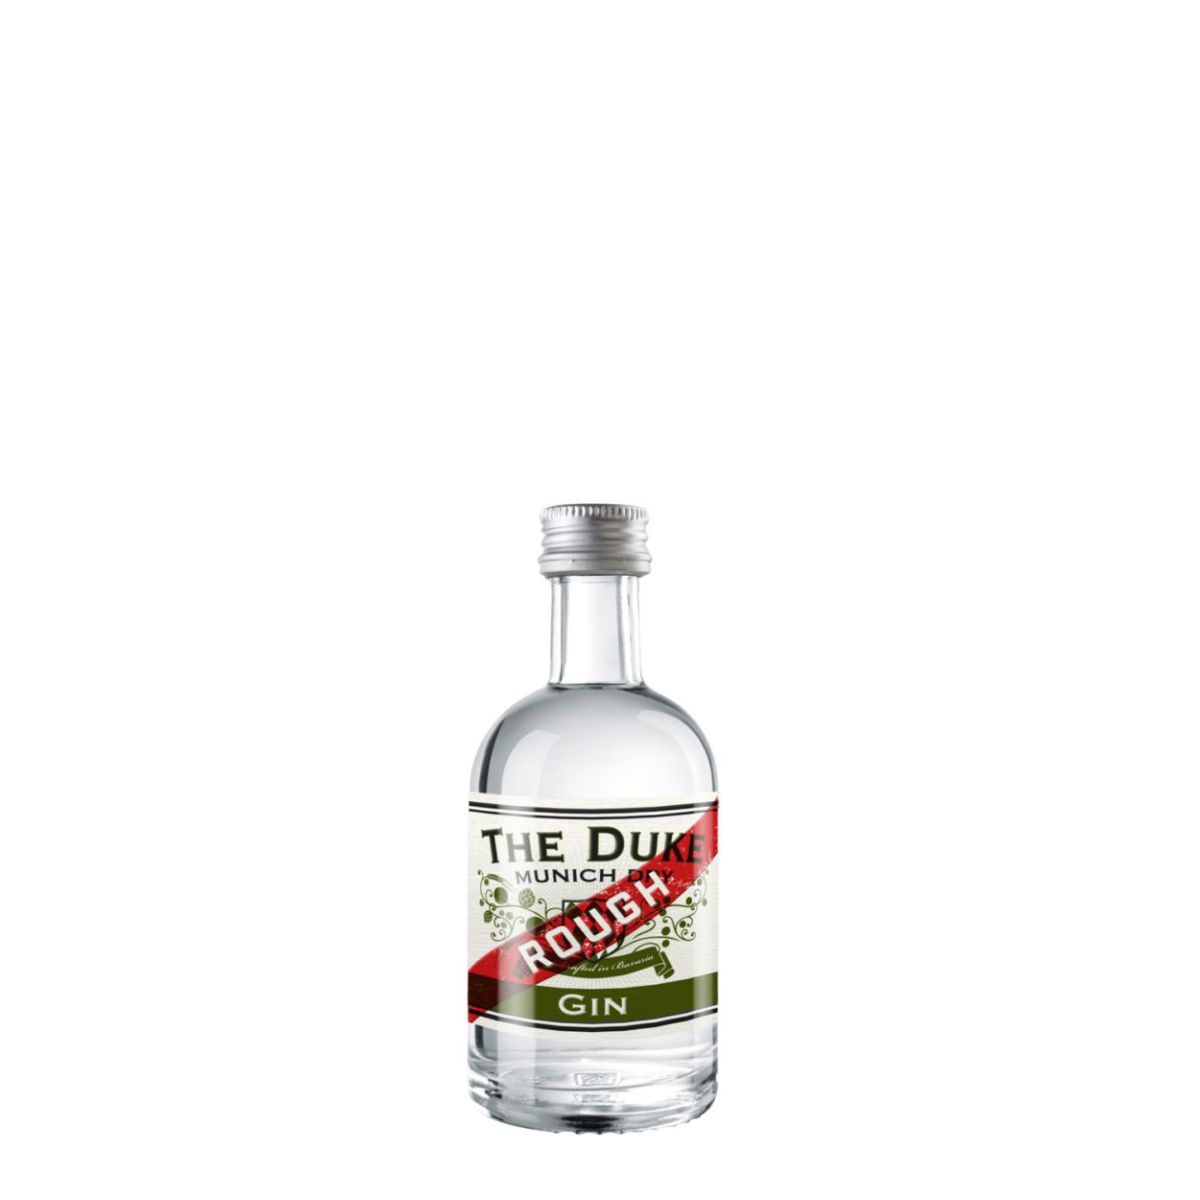 THE DUKE Rough Gin 5 cl